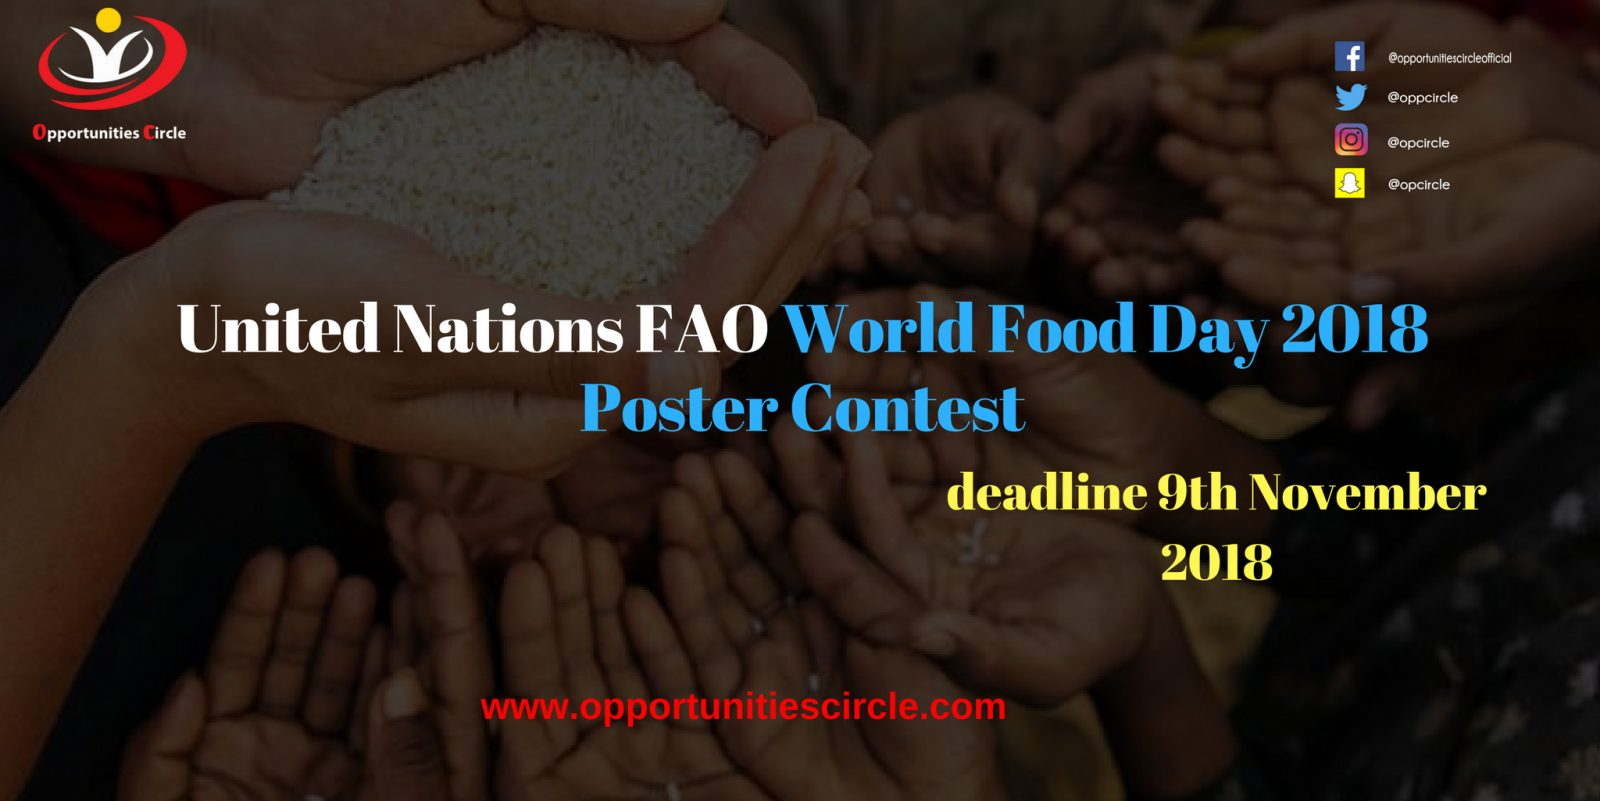 World Food Day Poster Contest 2018 - United Nations FAO World Food Day 2018 Poster Contest